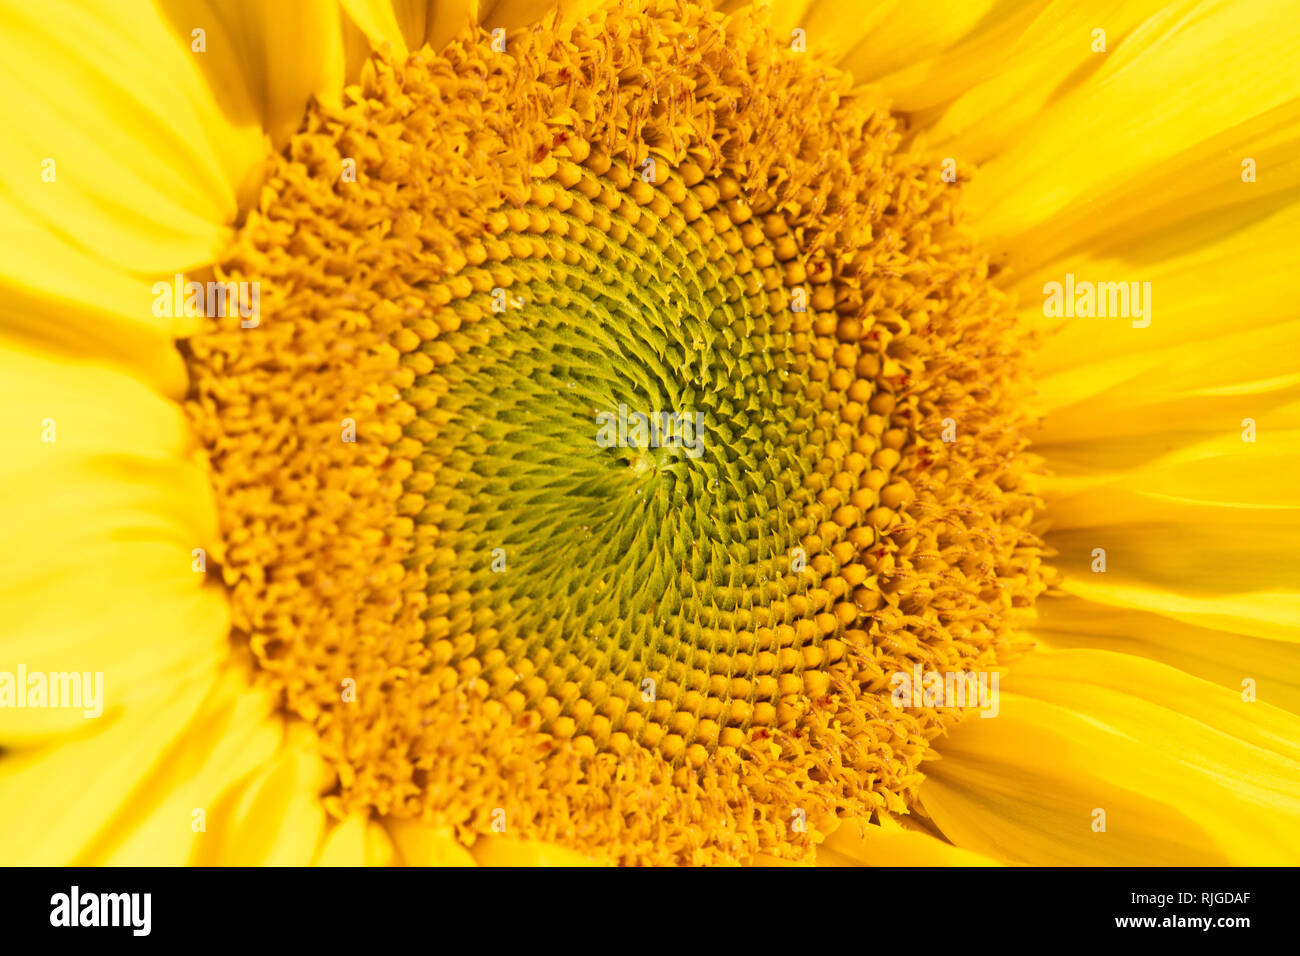 detail shot from a big yellow sunflower - Stock Image